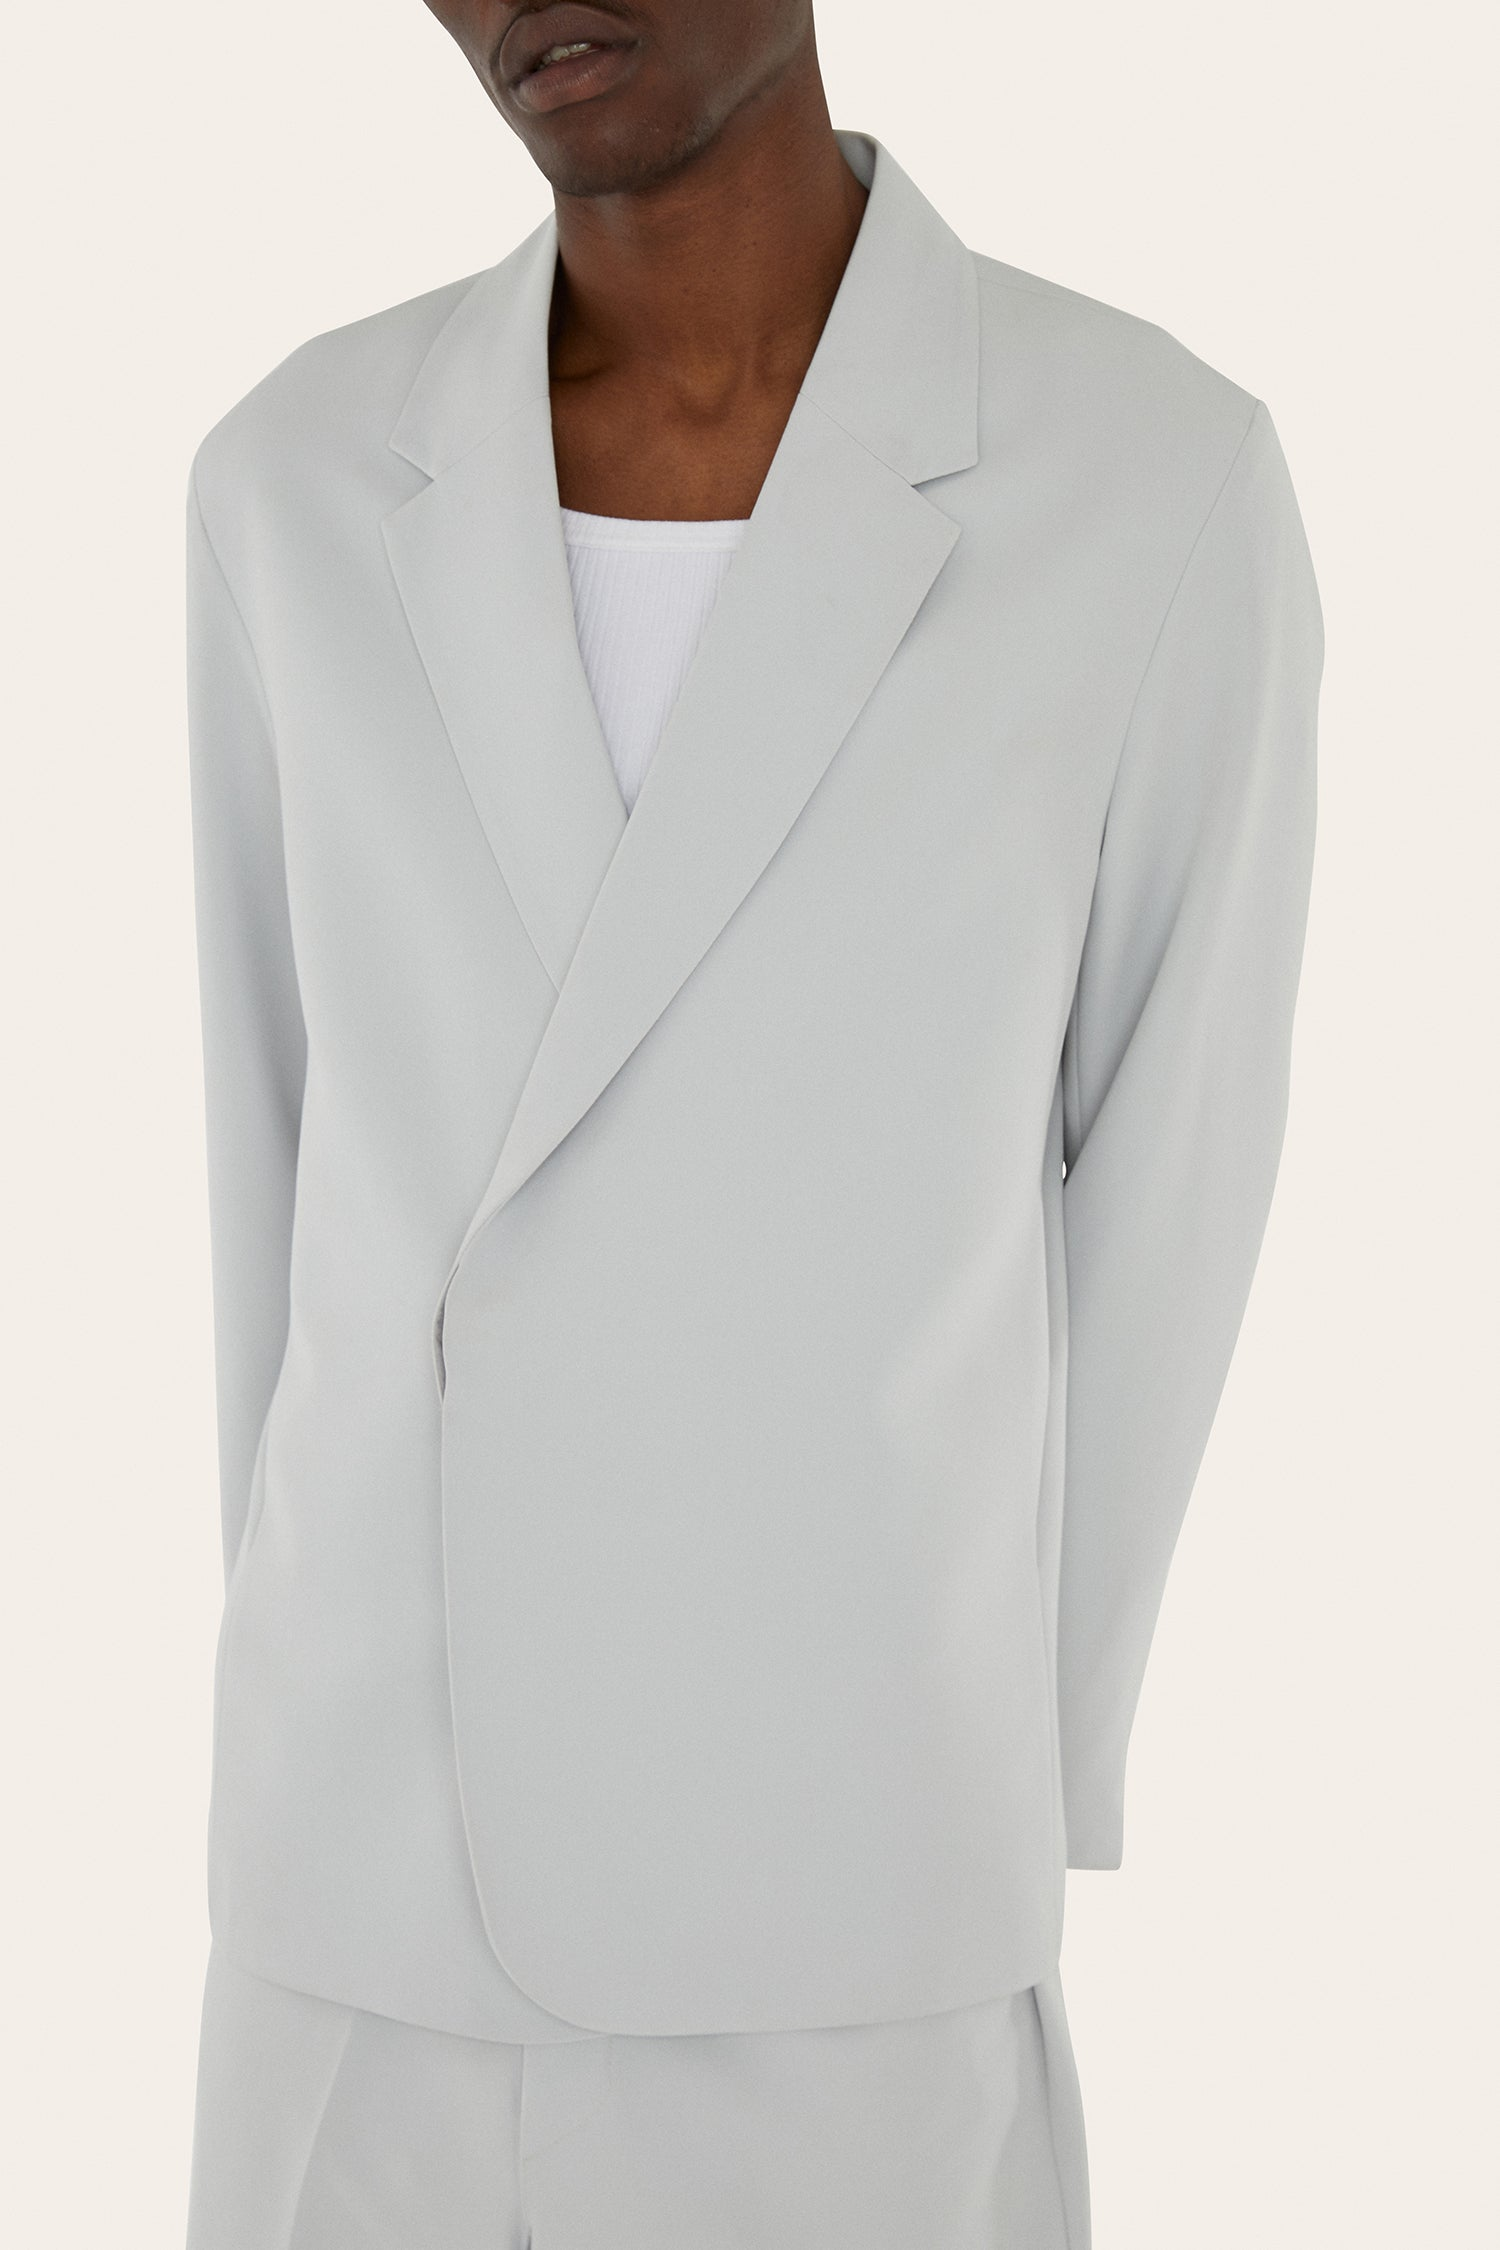 Crossbody Blazer in Cold White